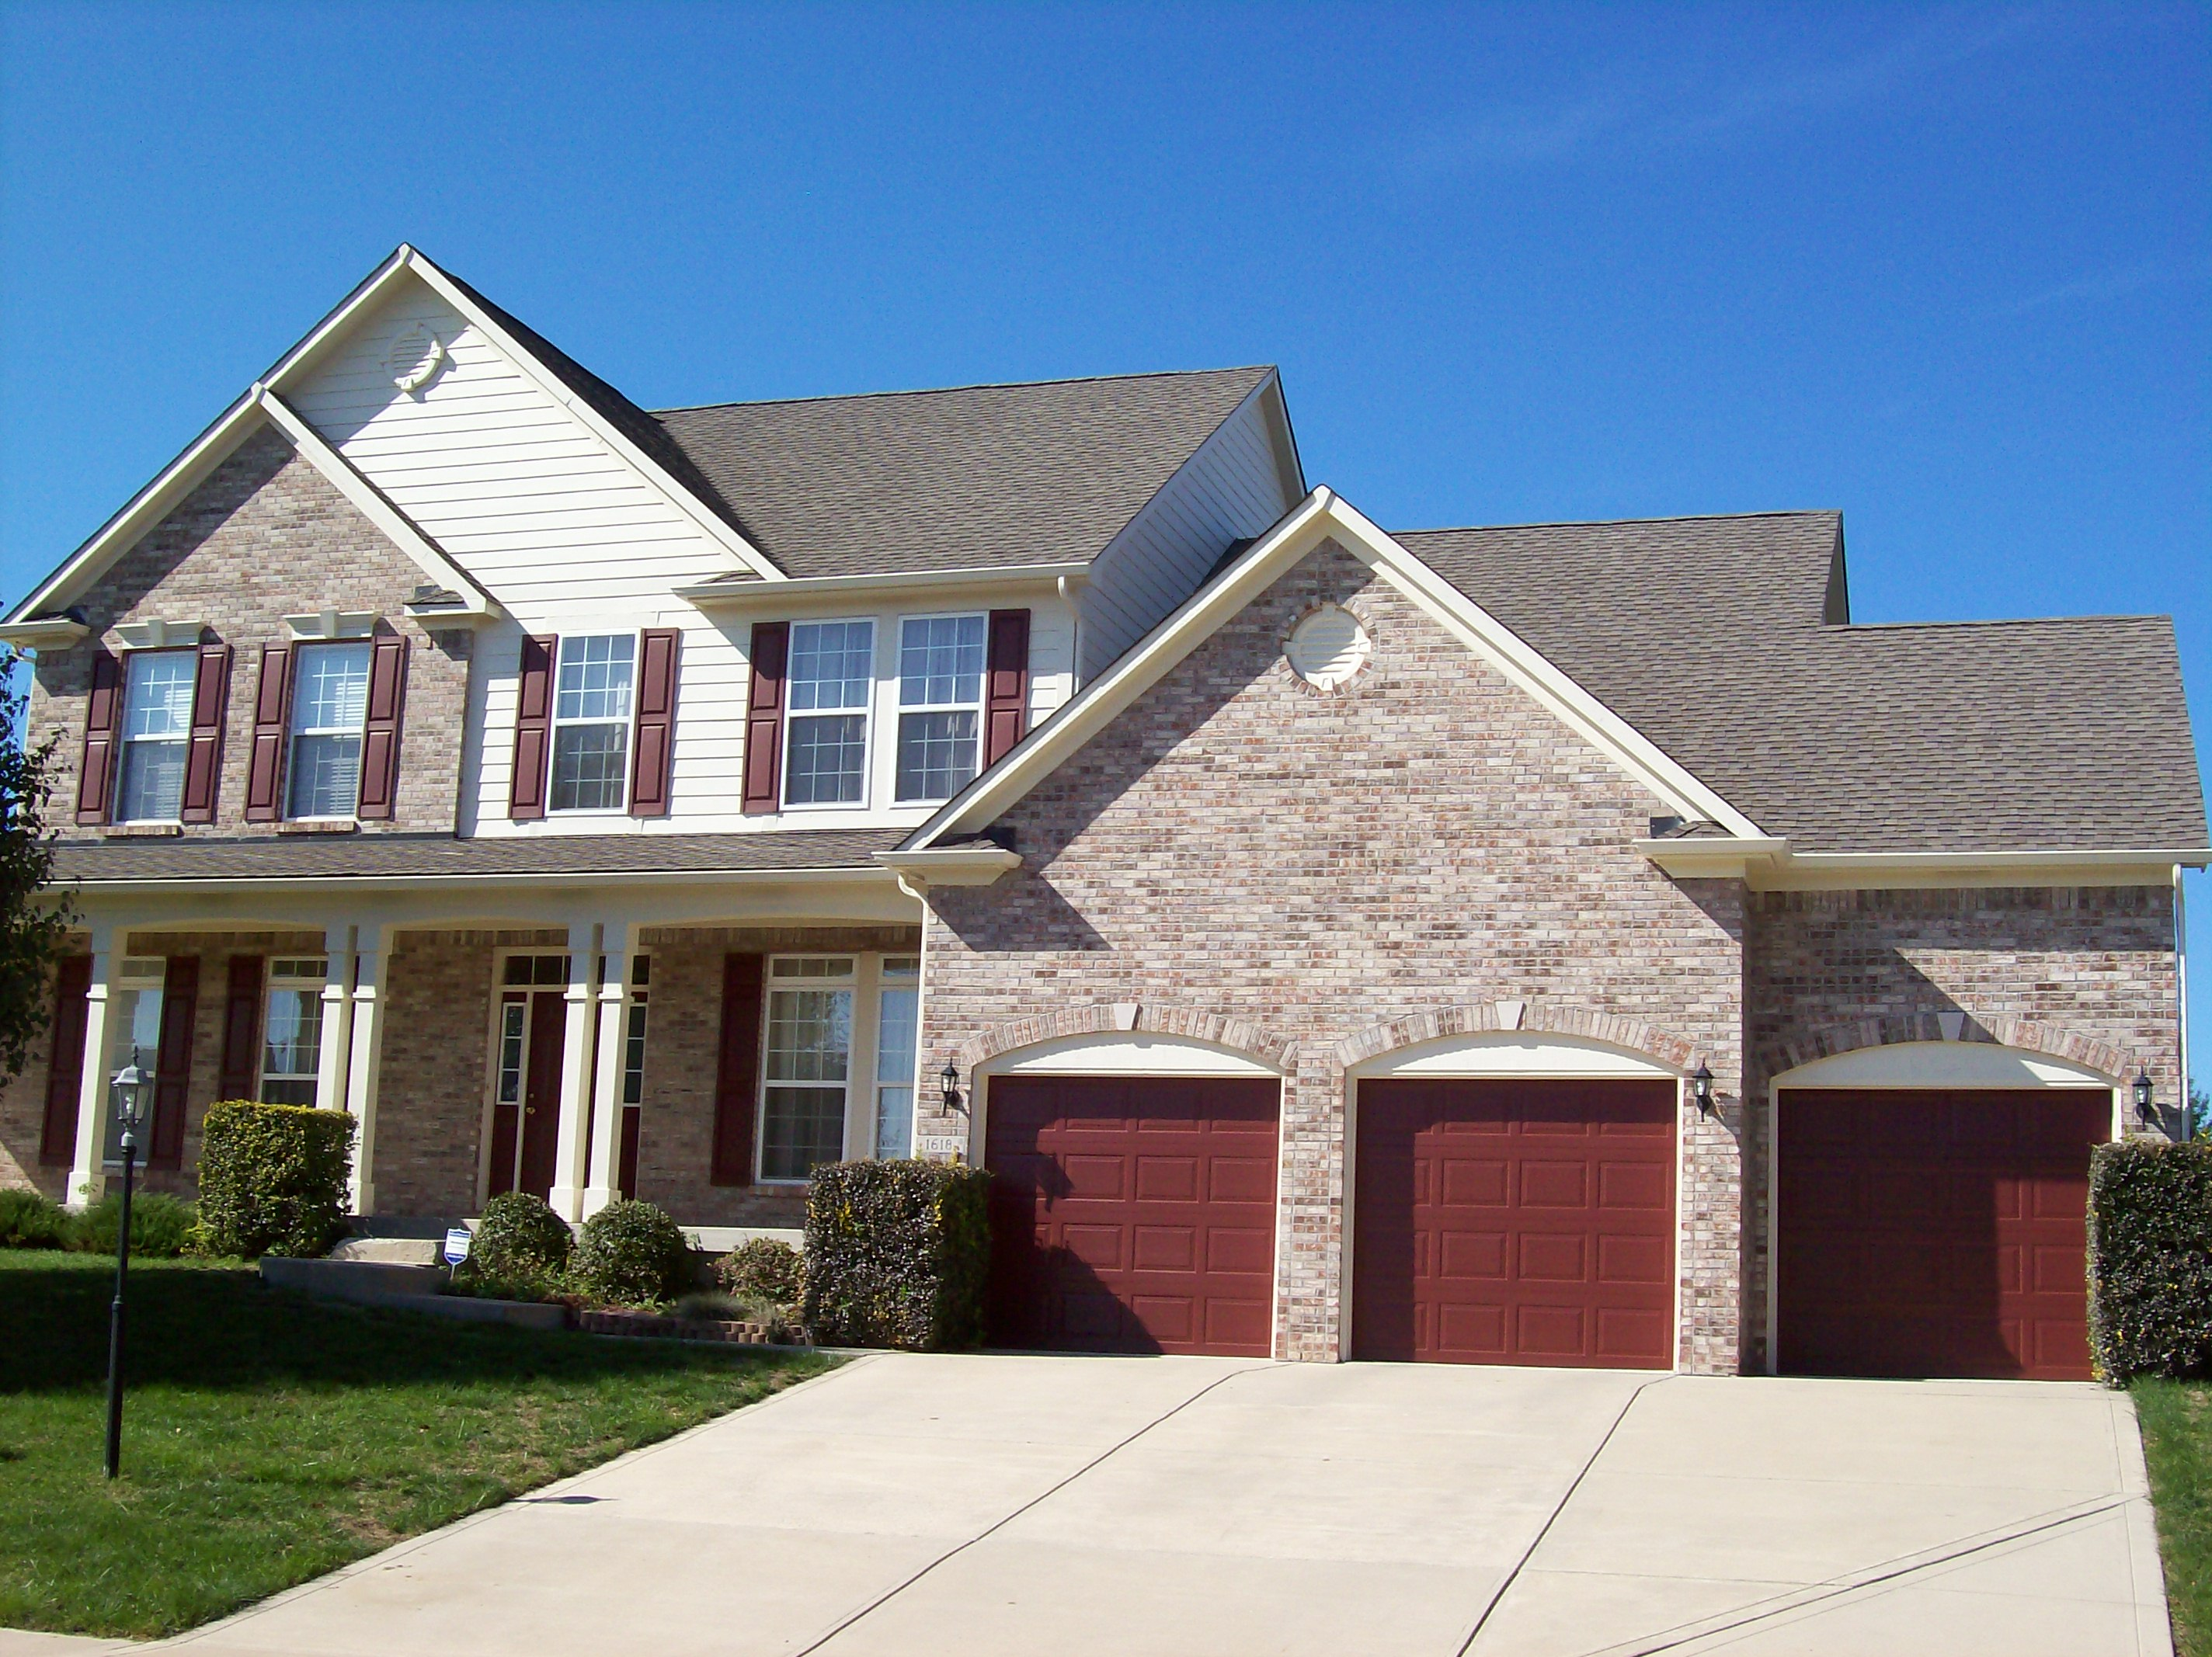 House cleaning professional exterior house cleaning indianapolis - Exterior home cleaning ...